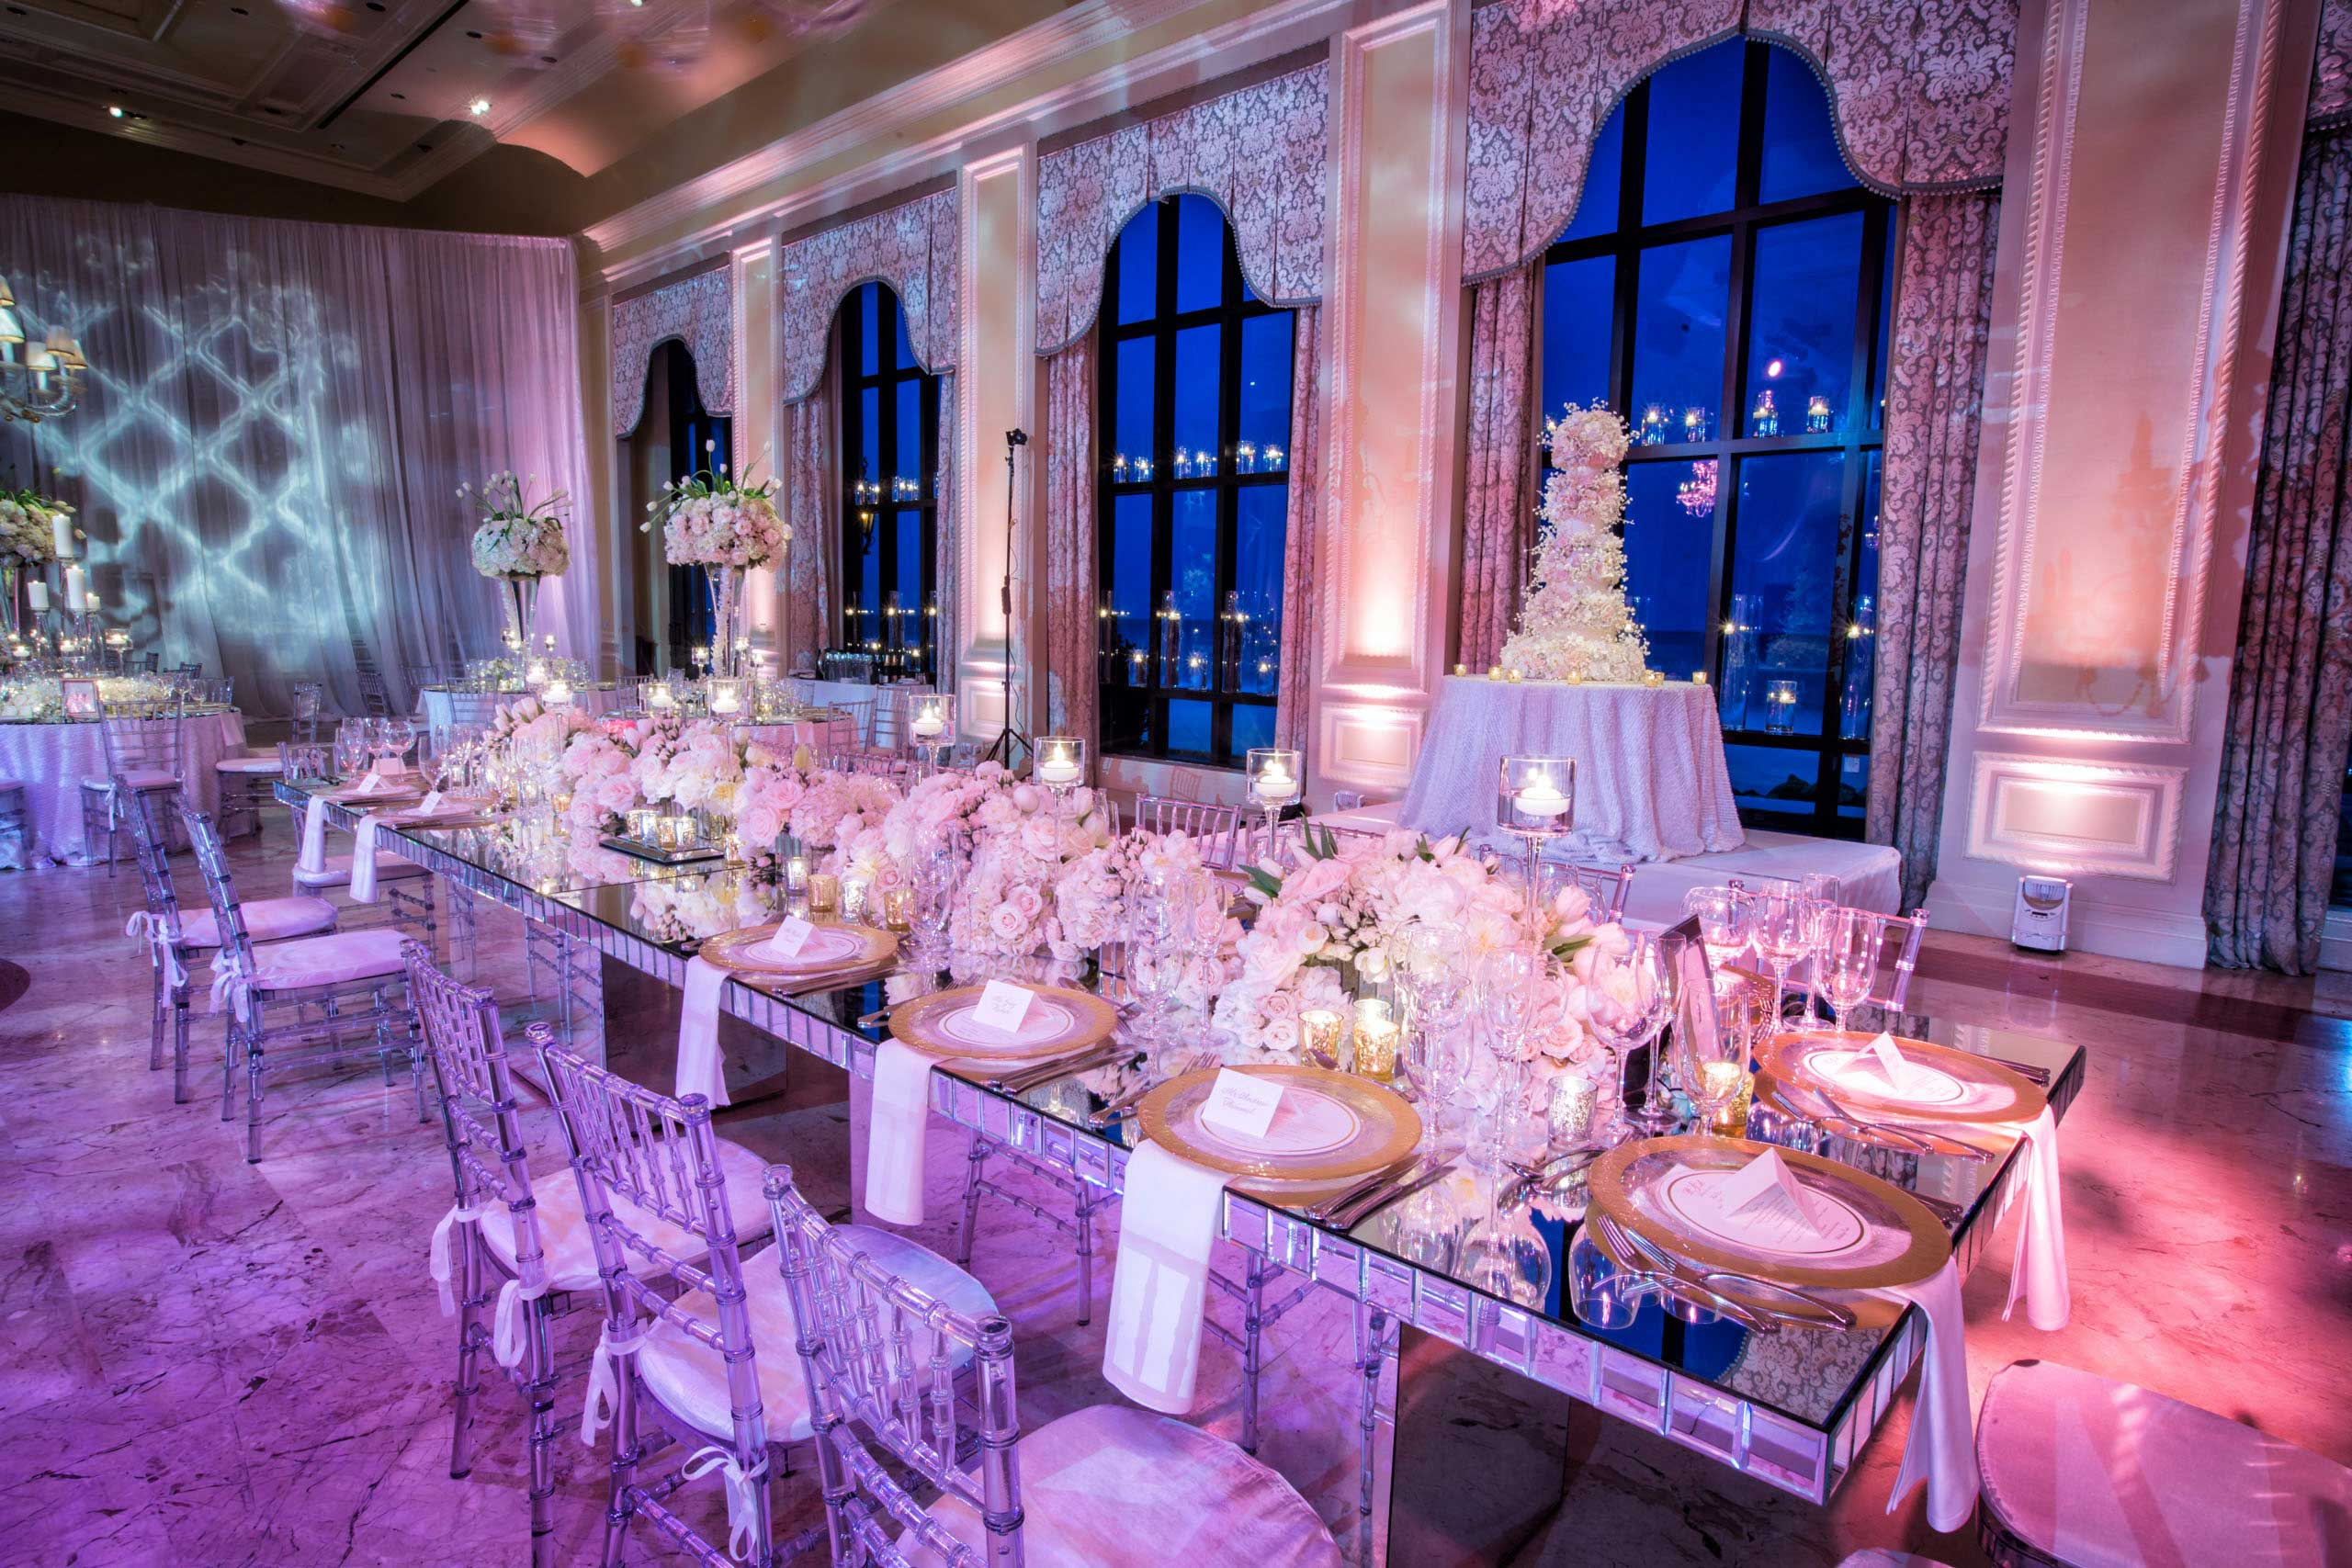 Purple lighting at wedding reception spring 2016 issue of inside weddings magazine